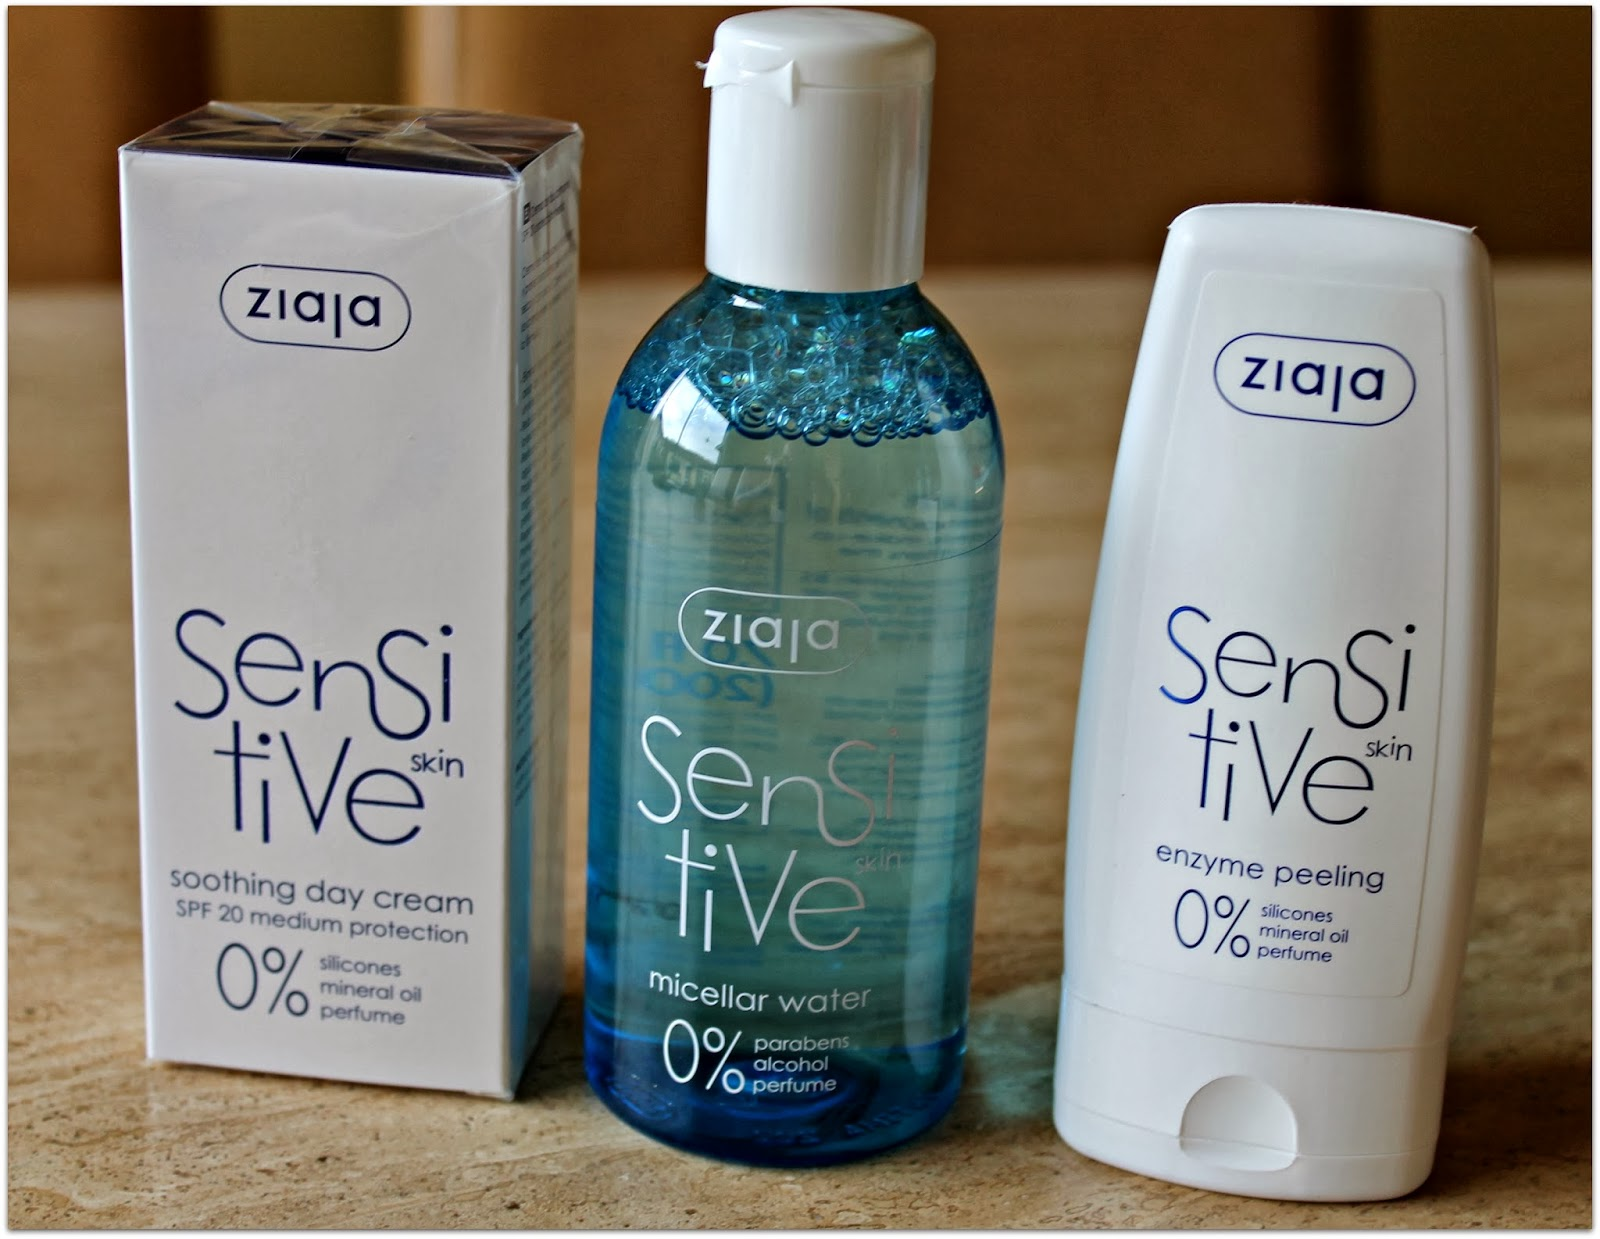 Ziaja SenSitive skincare